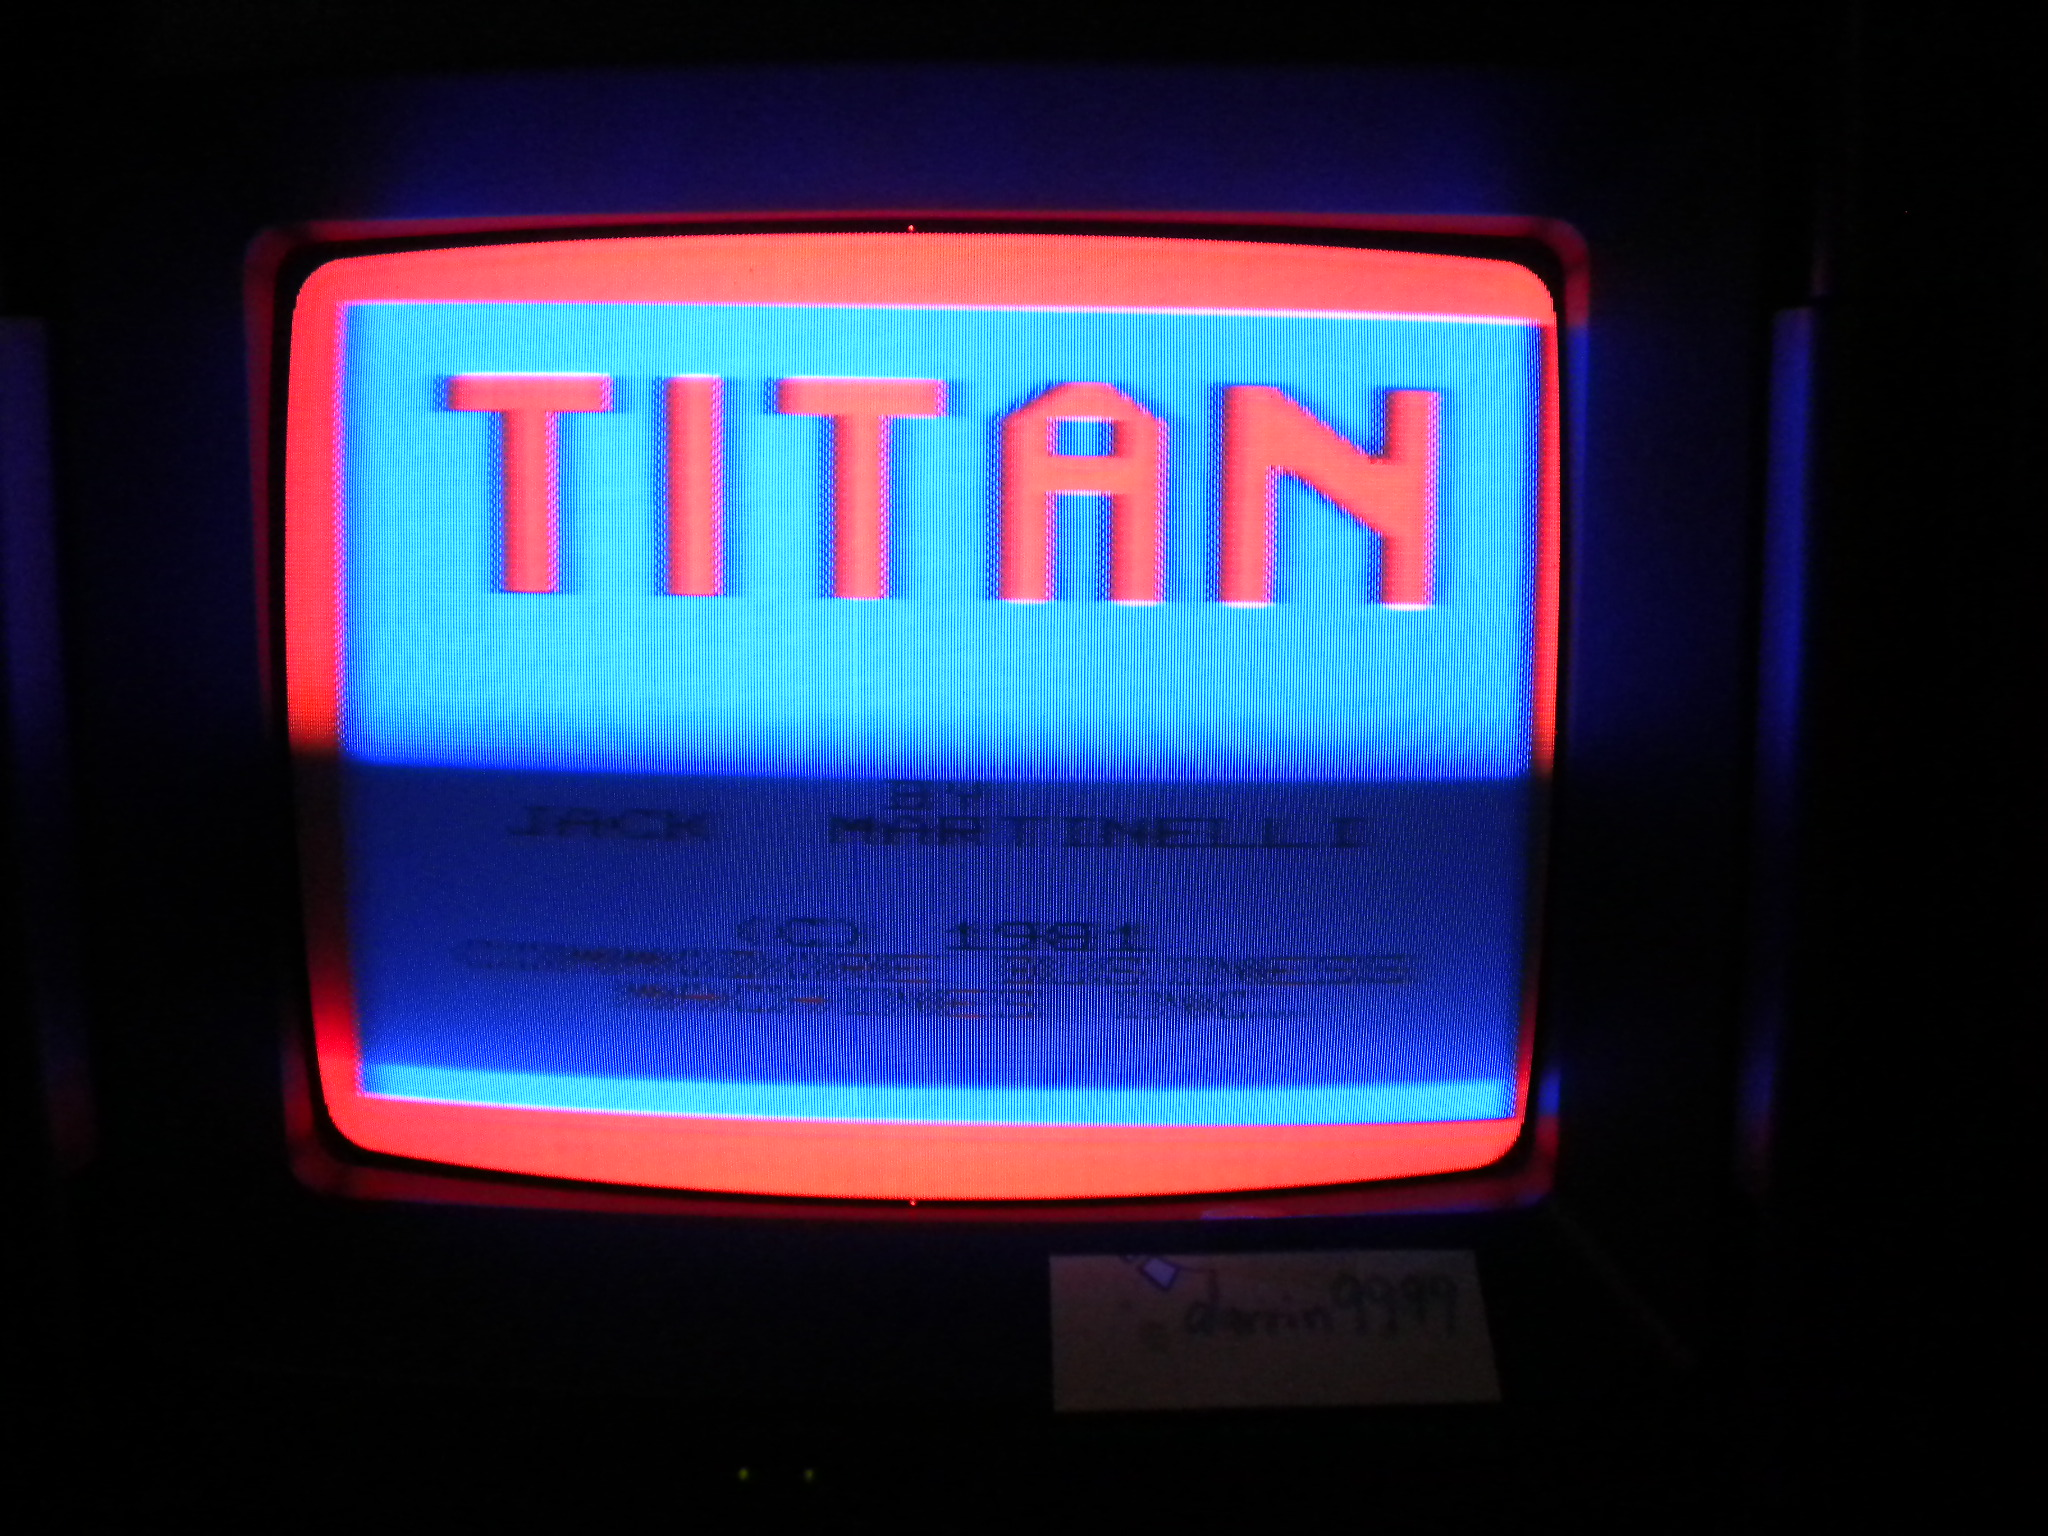 Titan 10,200 points